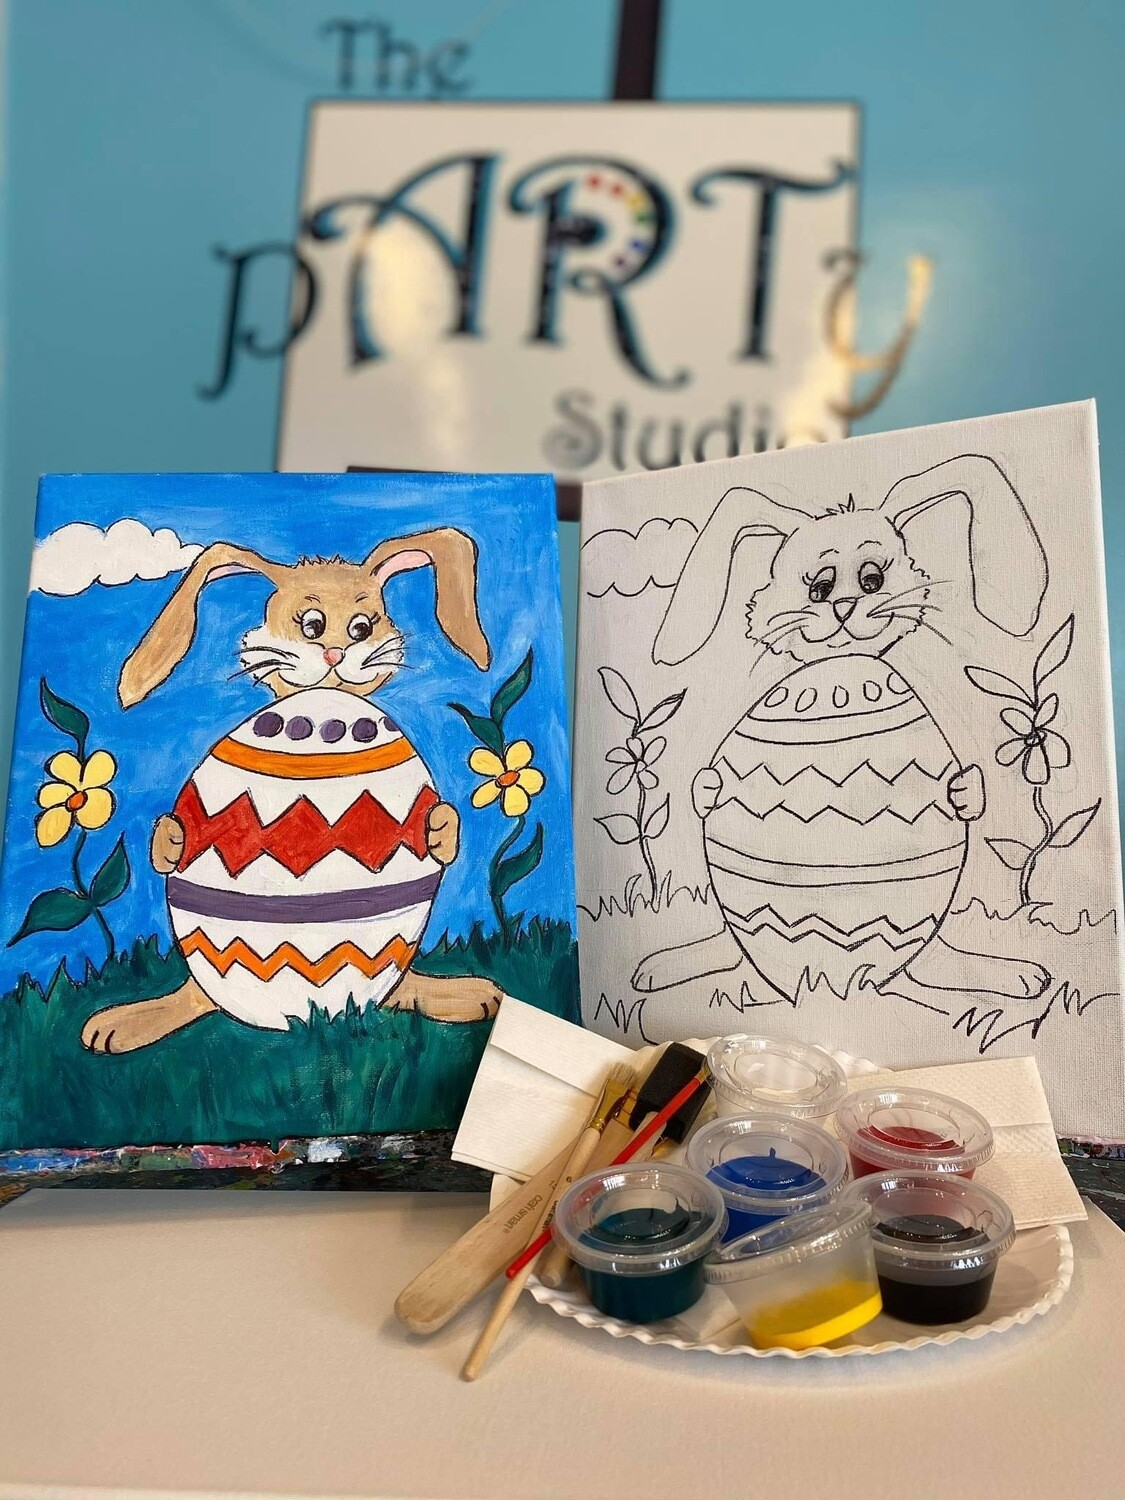 Easter Bunny - At Home Art Kit 12x12